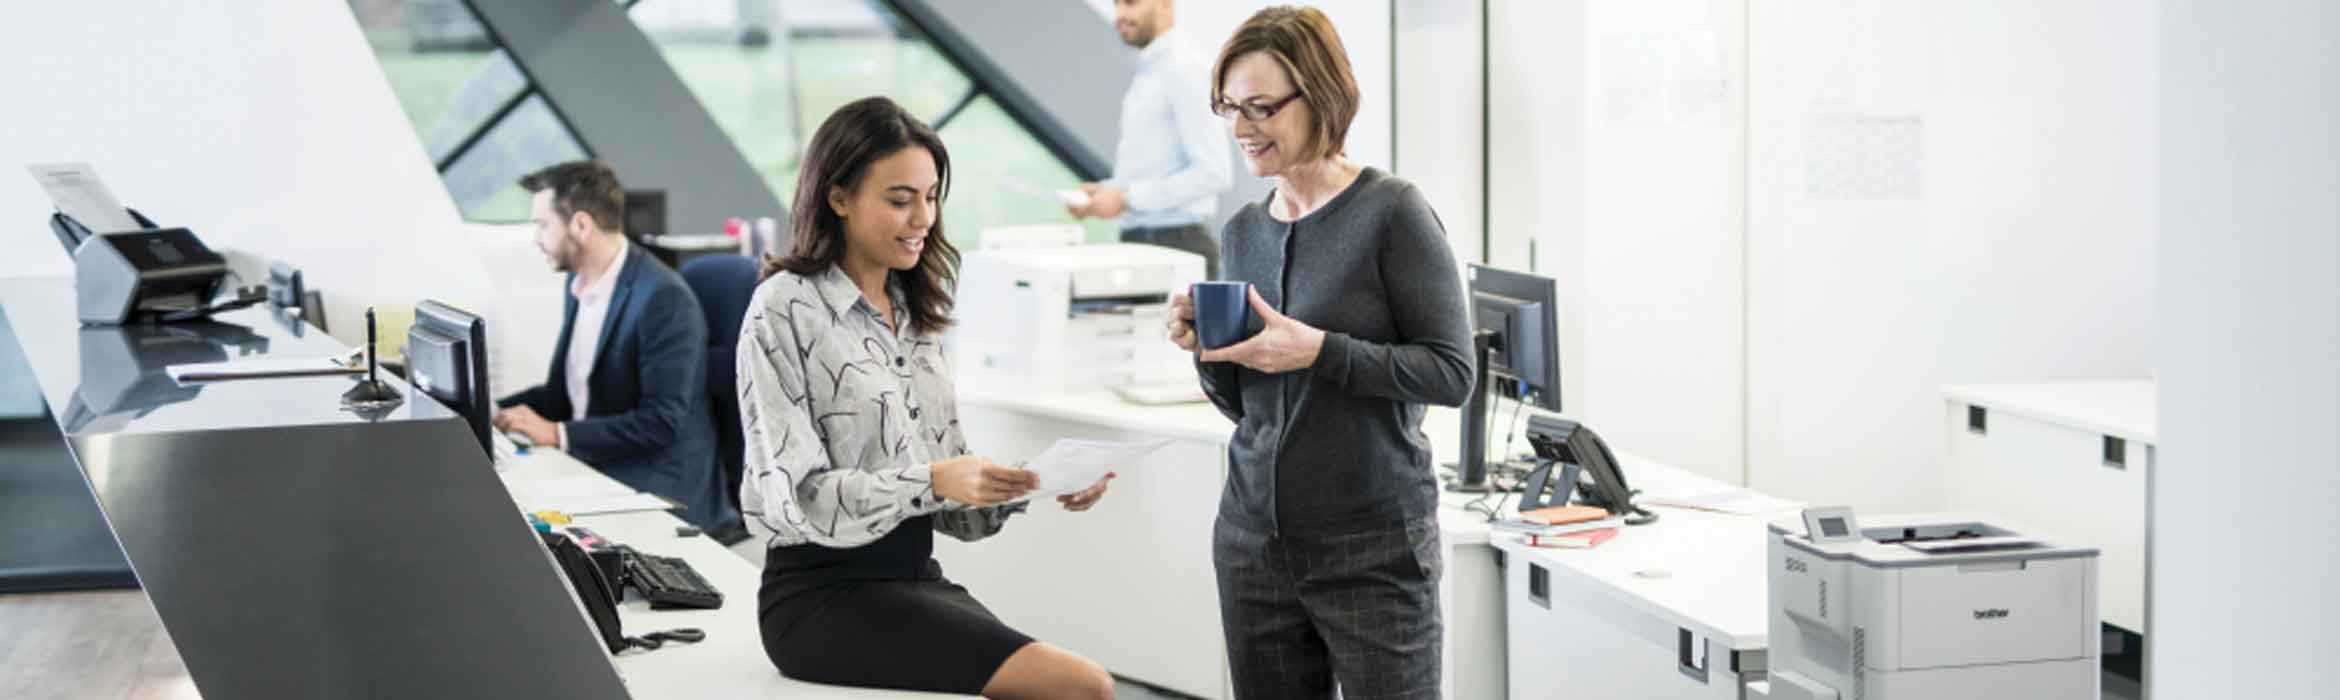 Two ladies in an office looking at a piece of paper and chatting with colleagues and a printer in the background